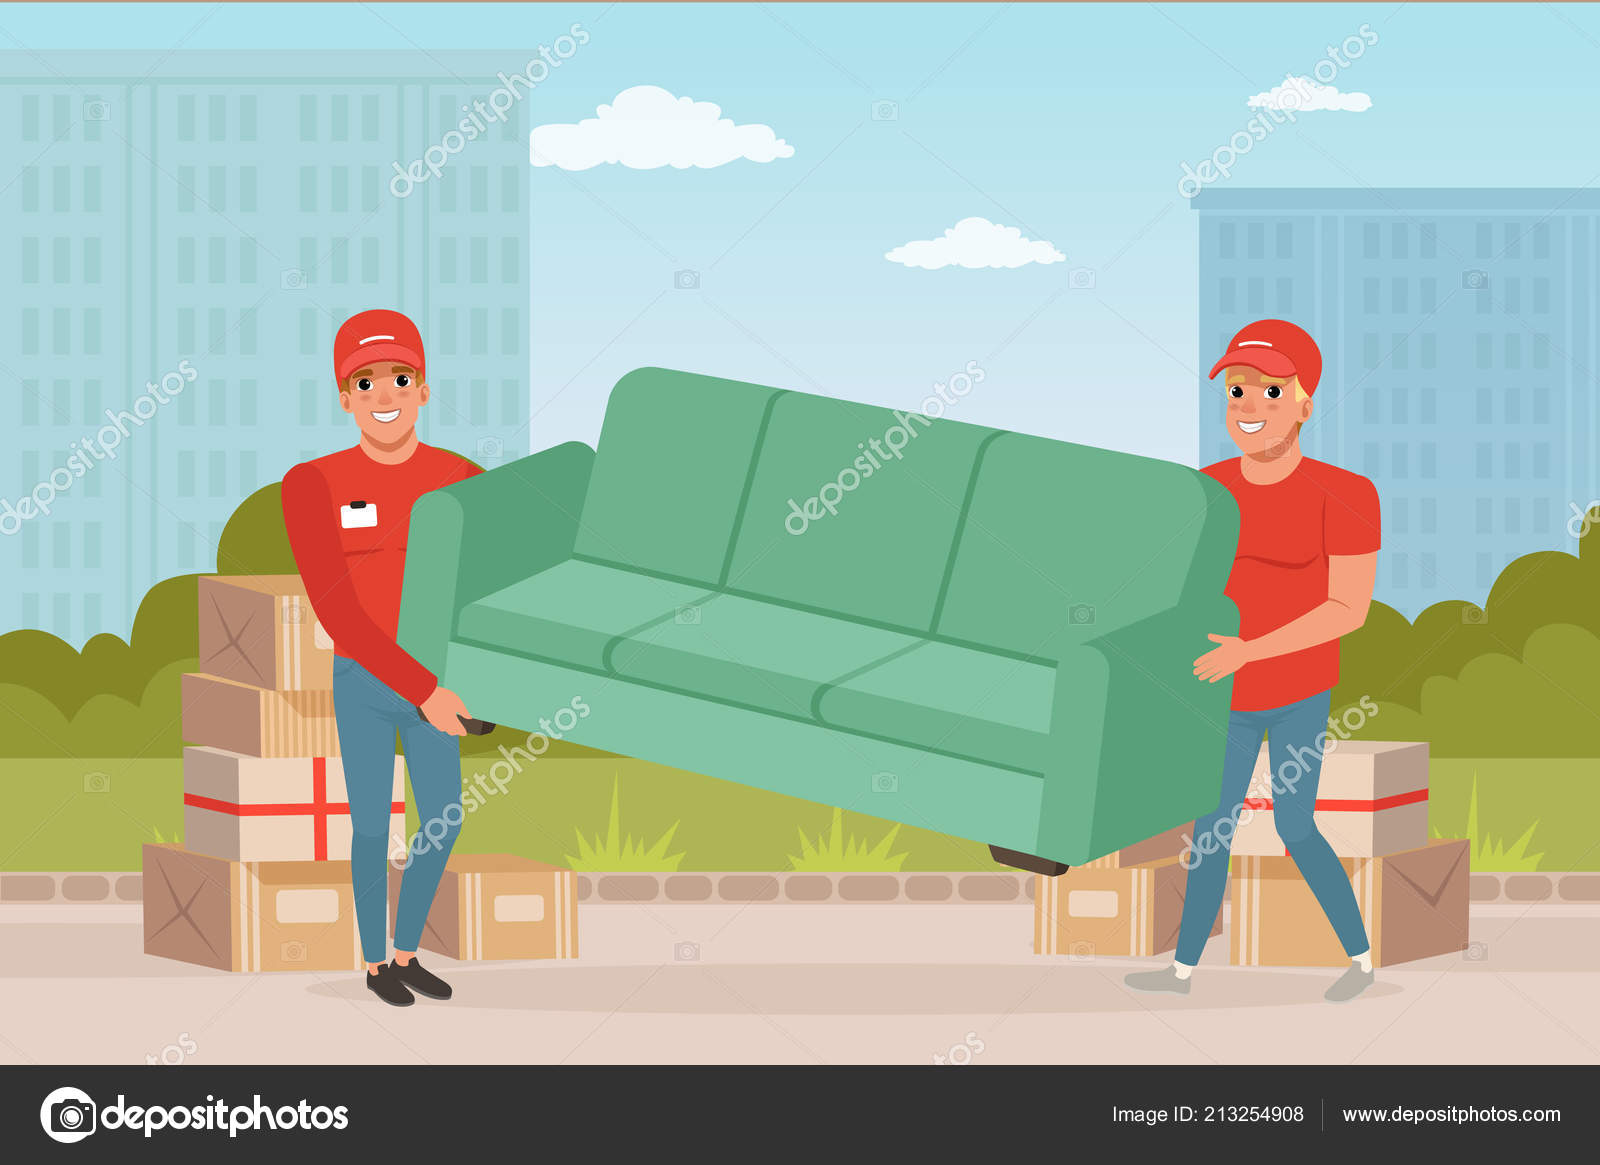 Sofa Bed Express Delivery Strong Guys Carrying Sofa Cartoon Couriers Characters Express